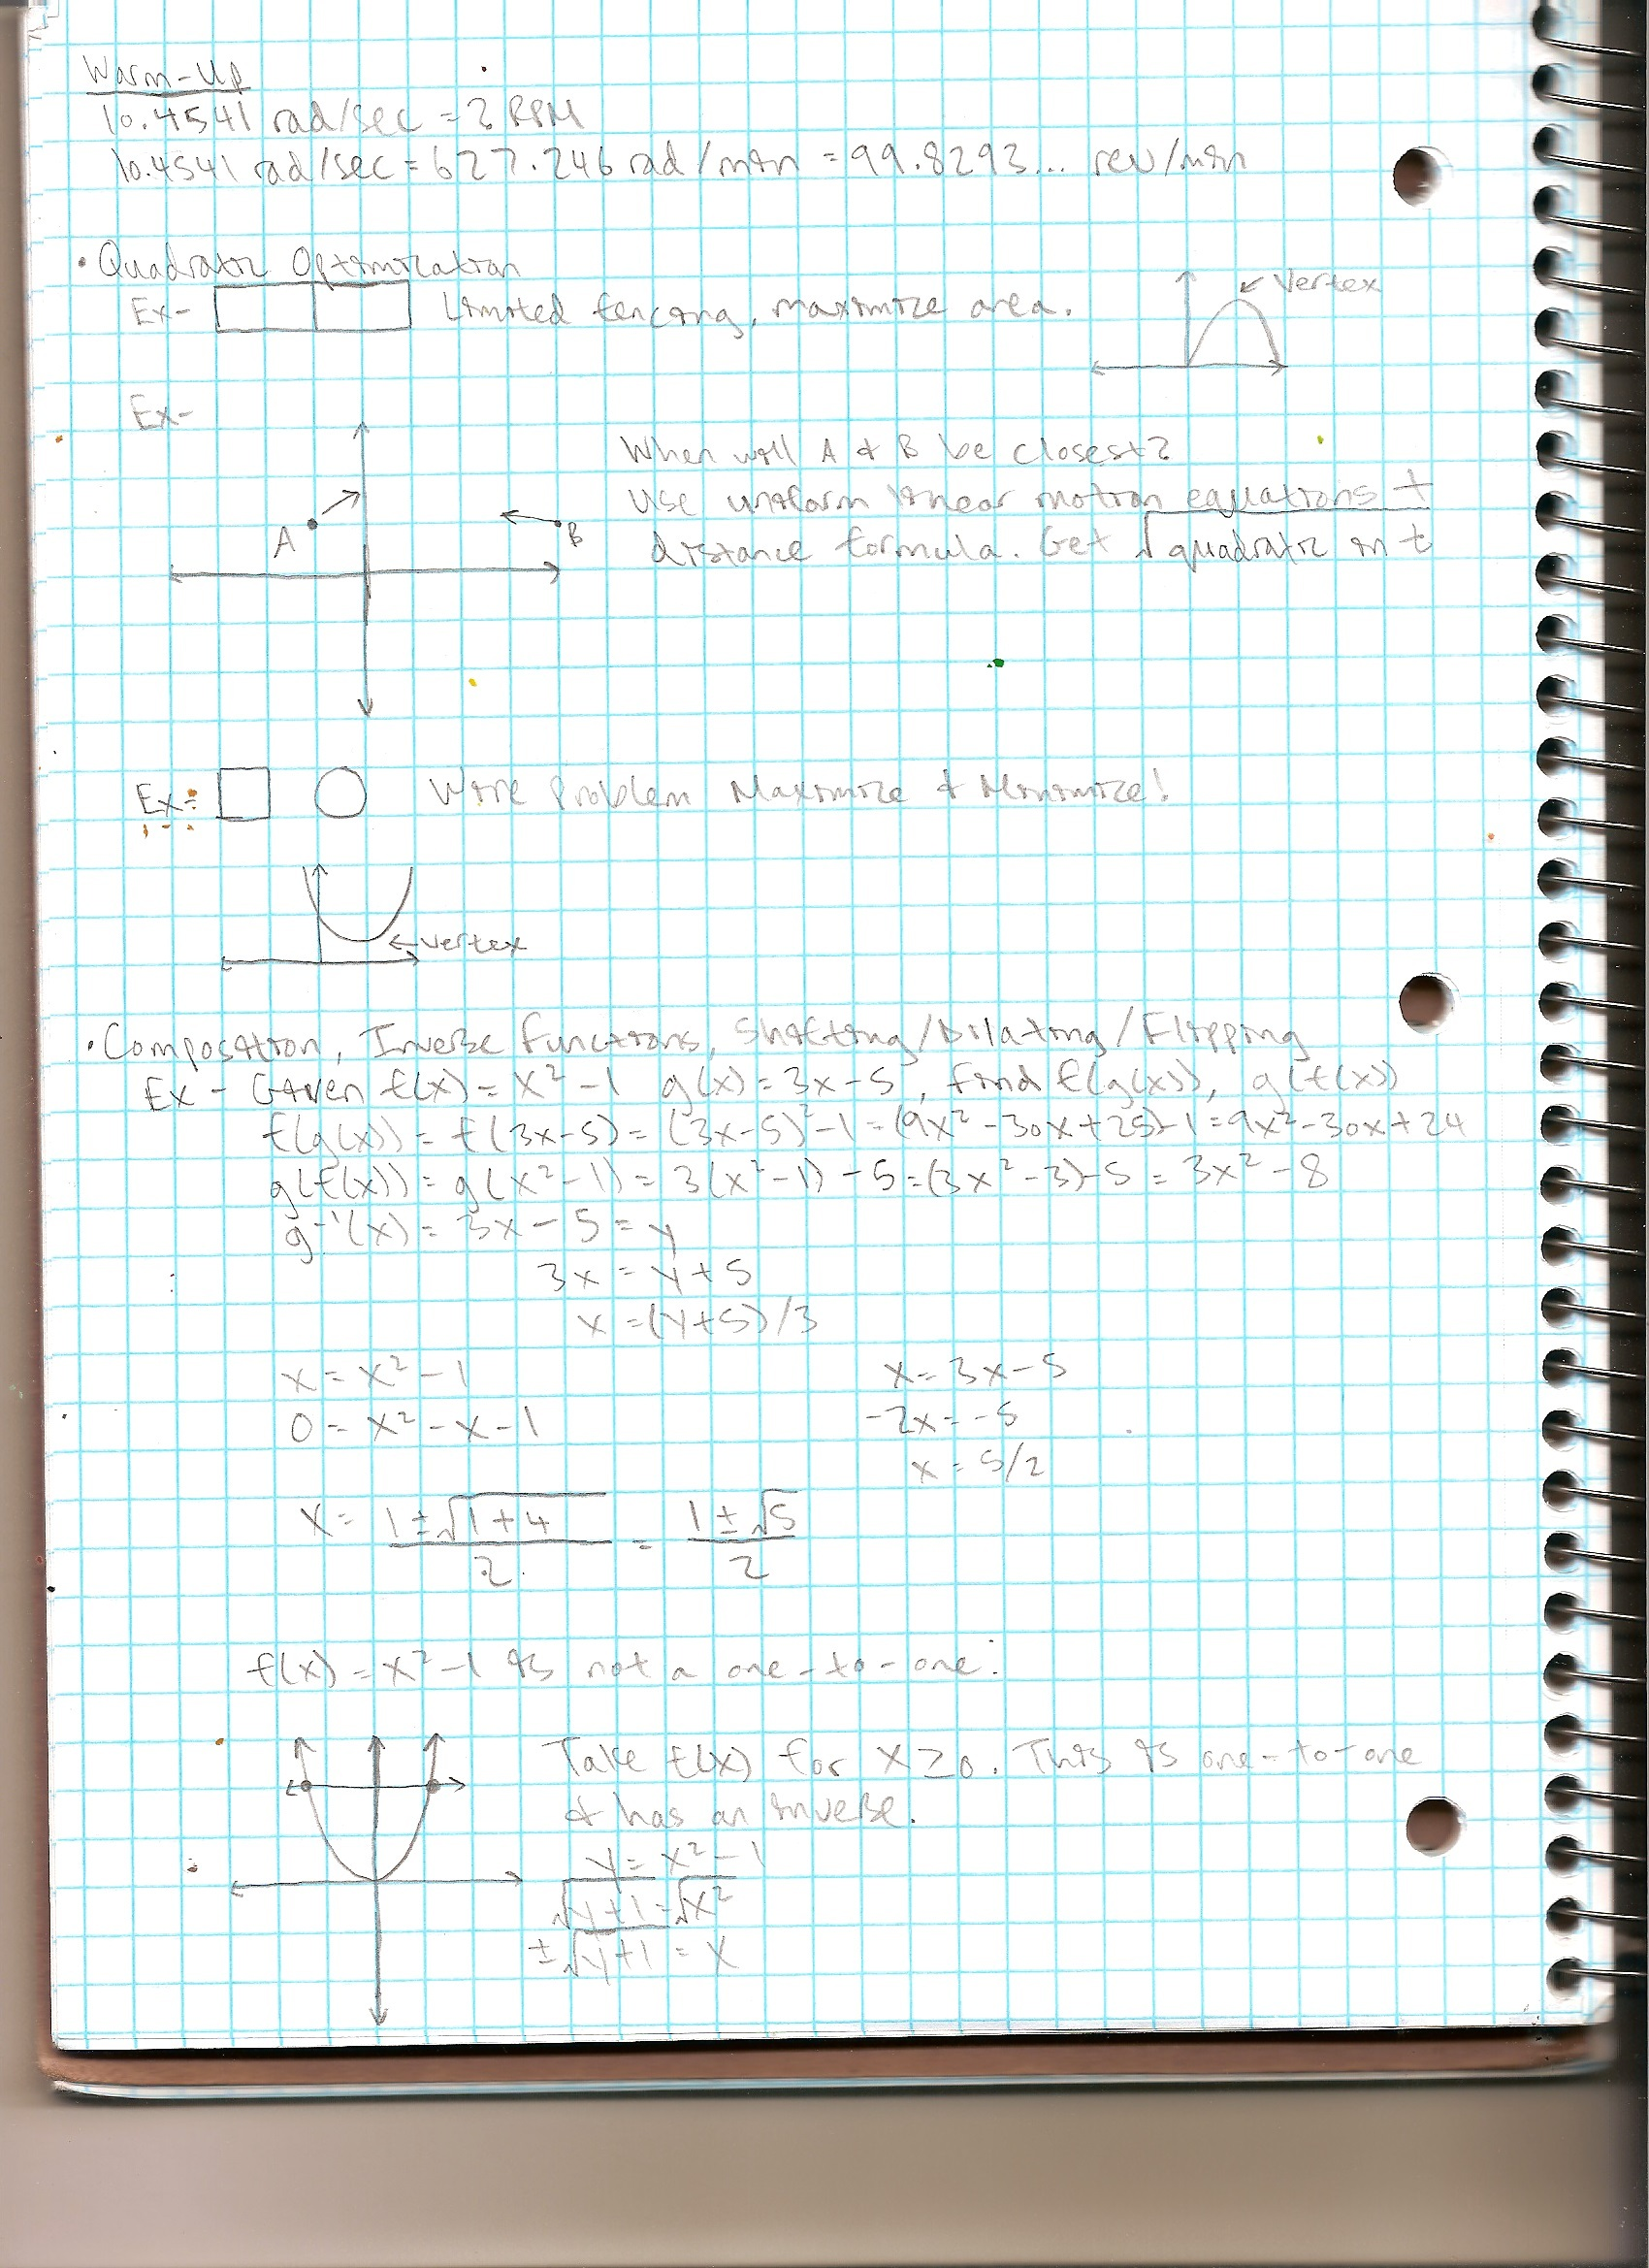 MATH 120 - Class Notes - Week 2